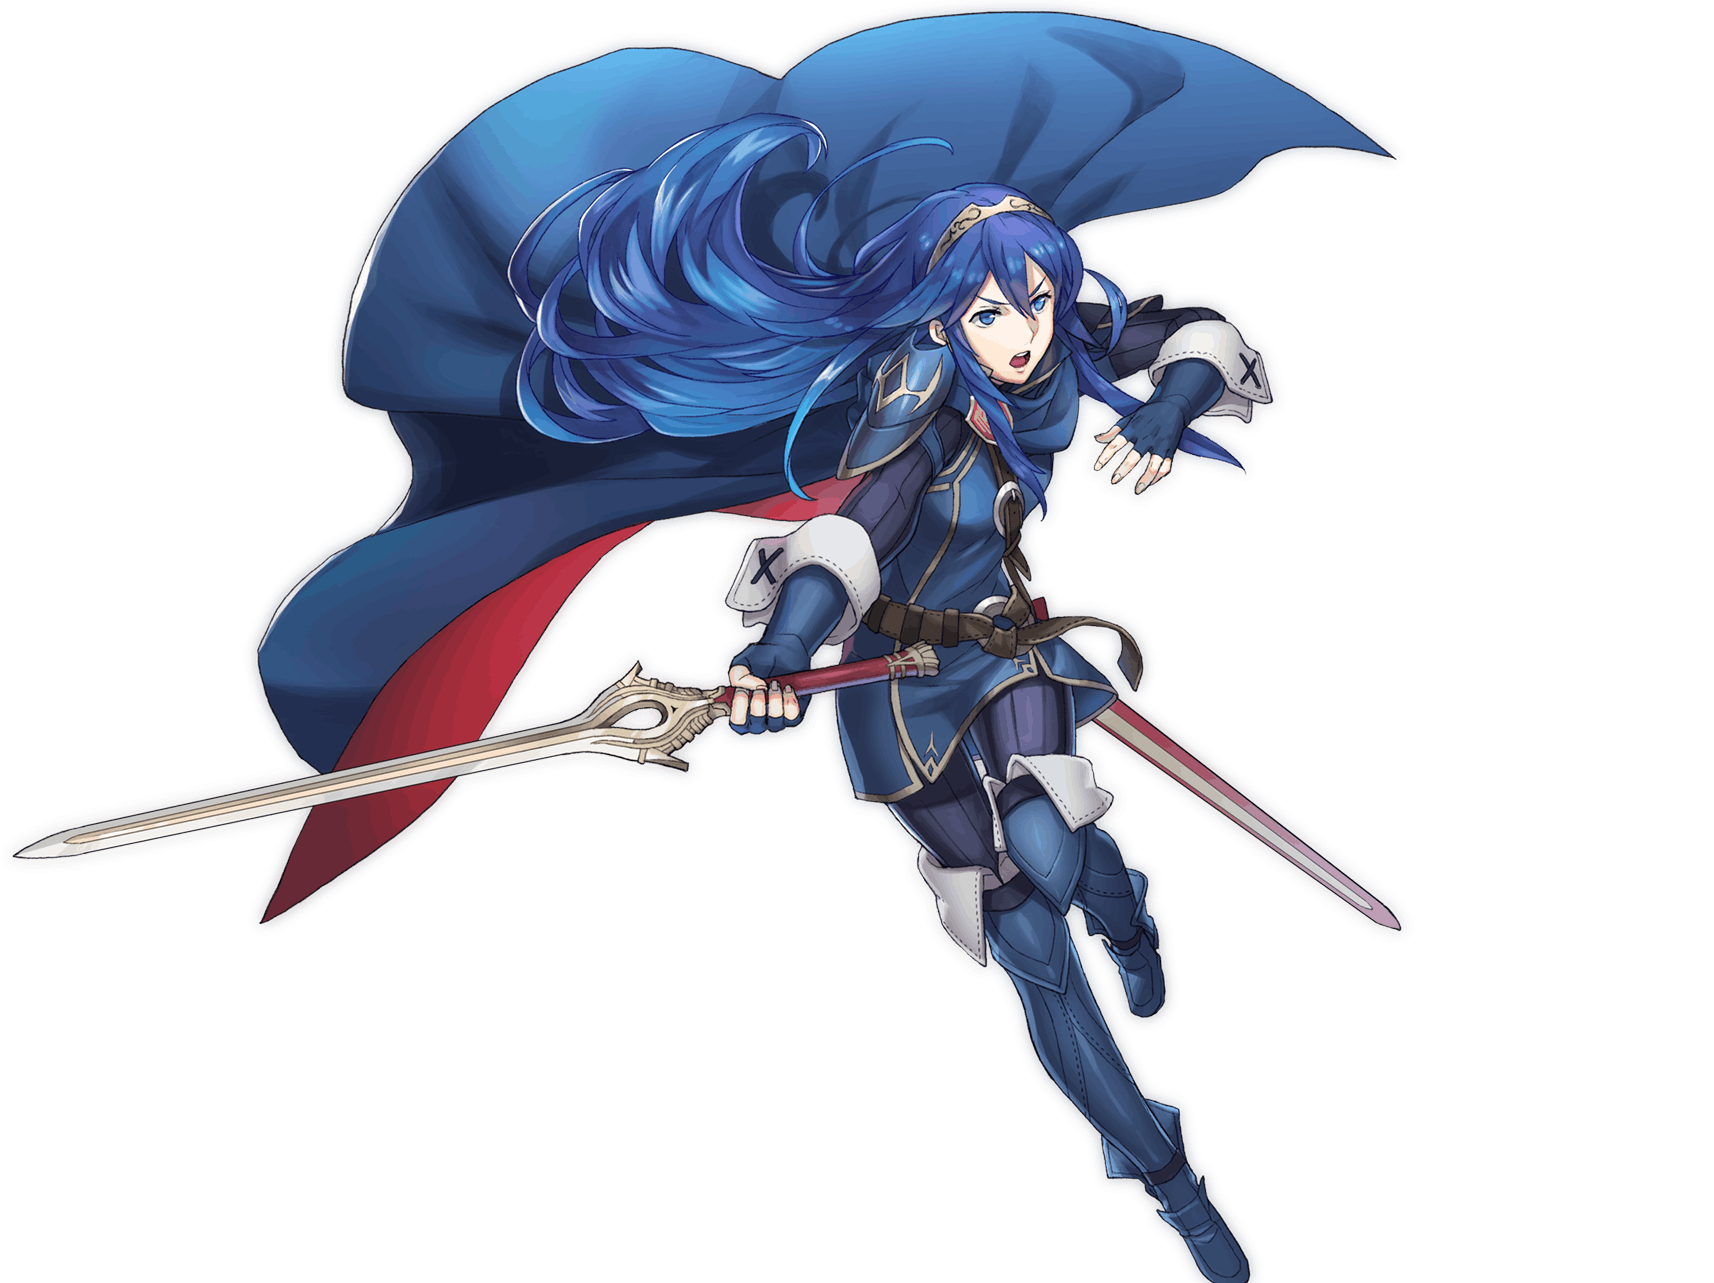 'Fire Emblem' is Having One Hell of a Year